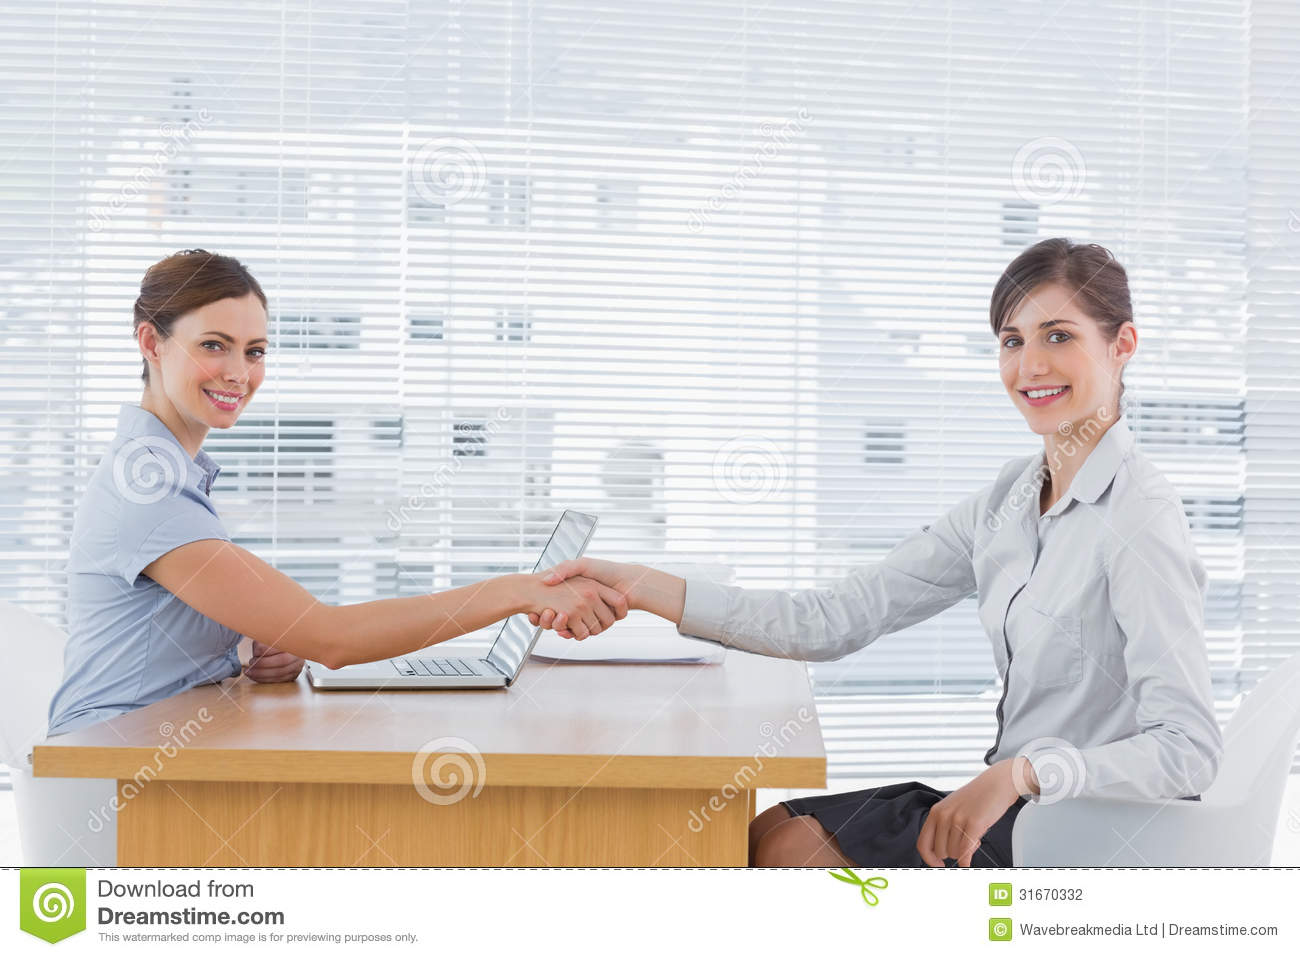 businessw shaking hands interviewee and both smiling at businessw shaking hands interviewee and both smiling at